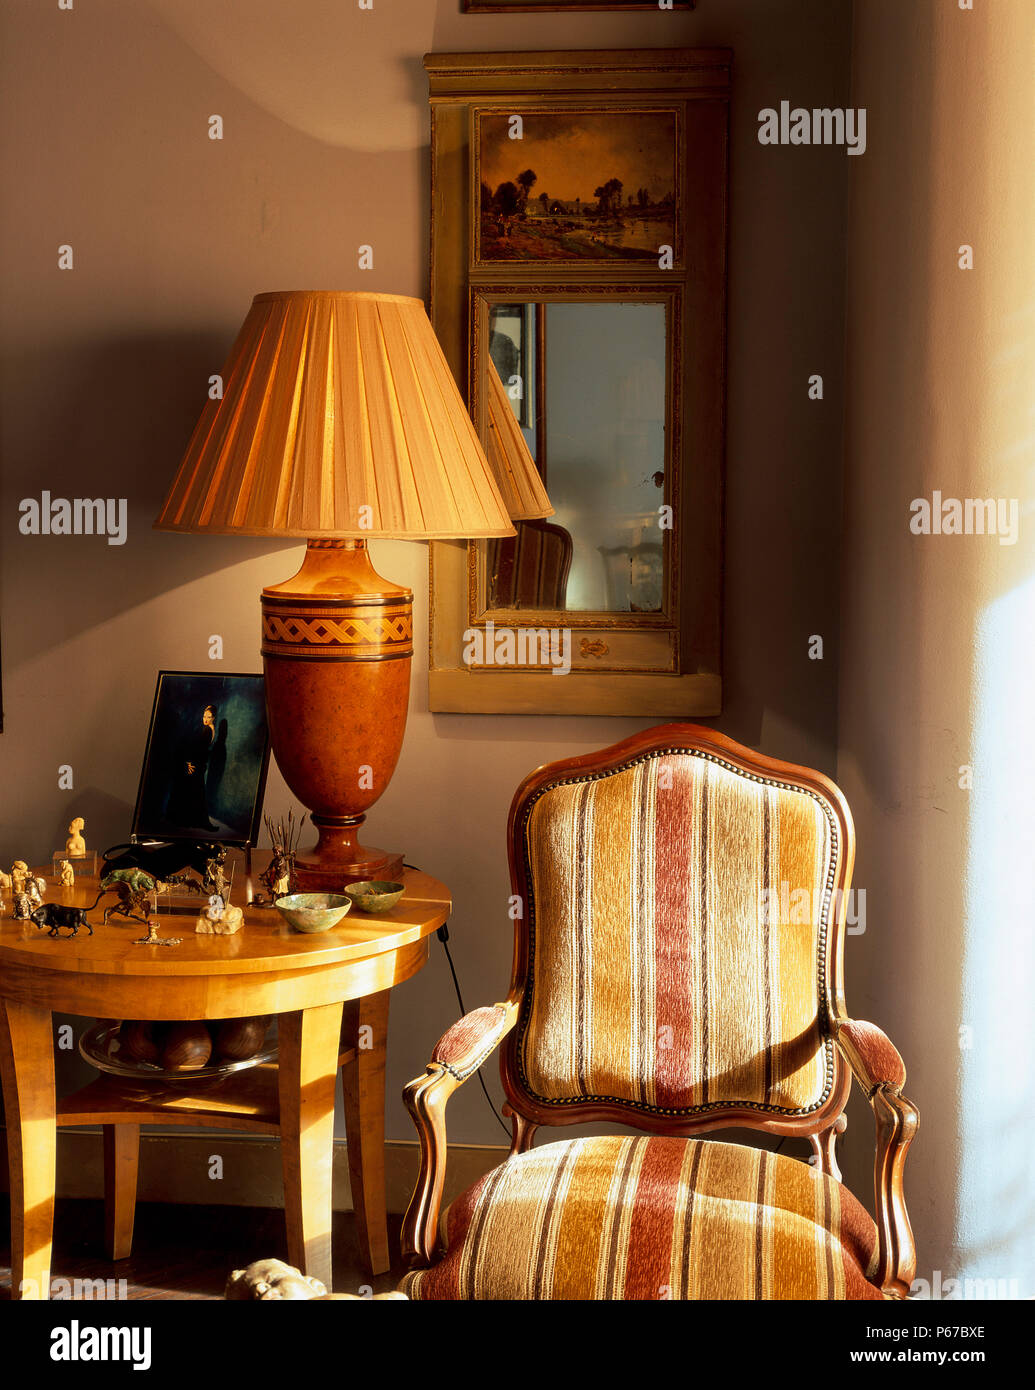 View of a striped armchair - Stock Image